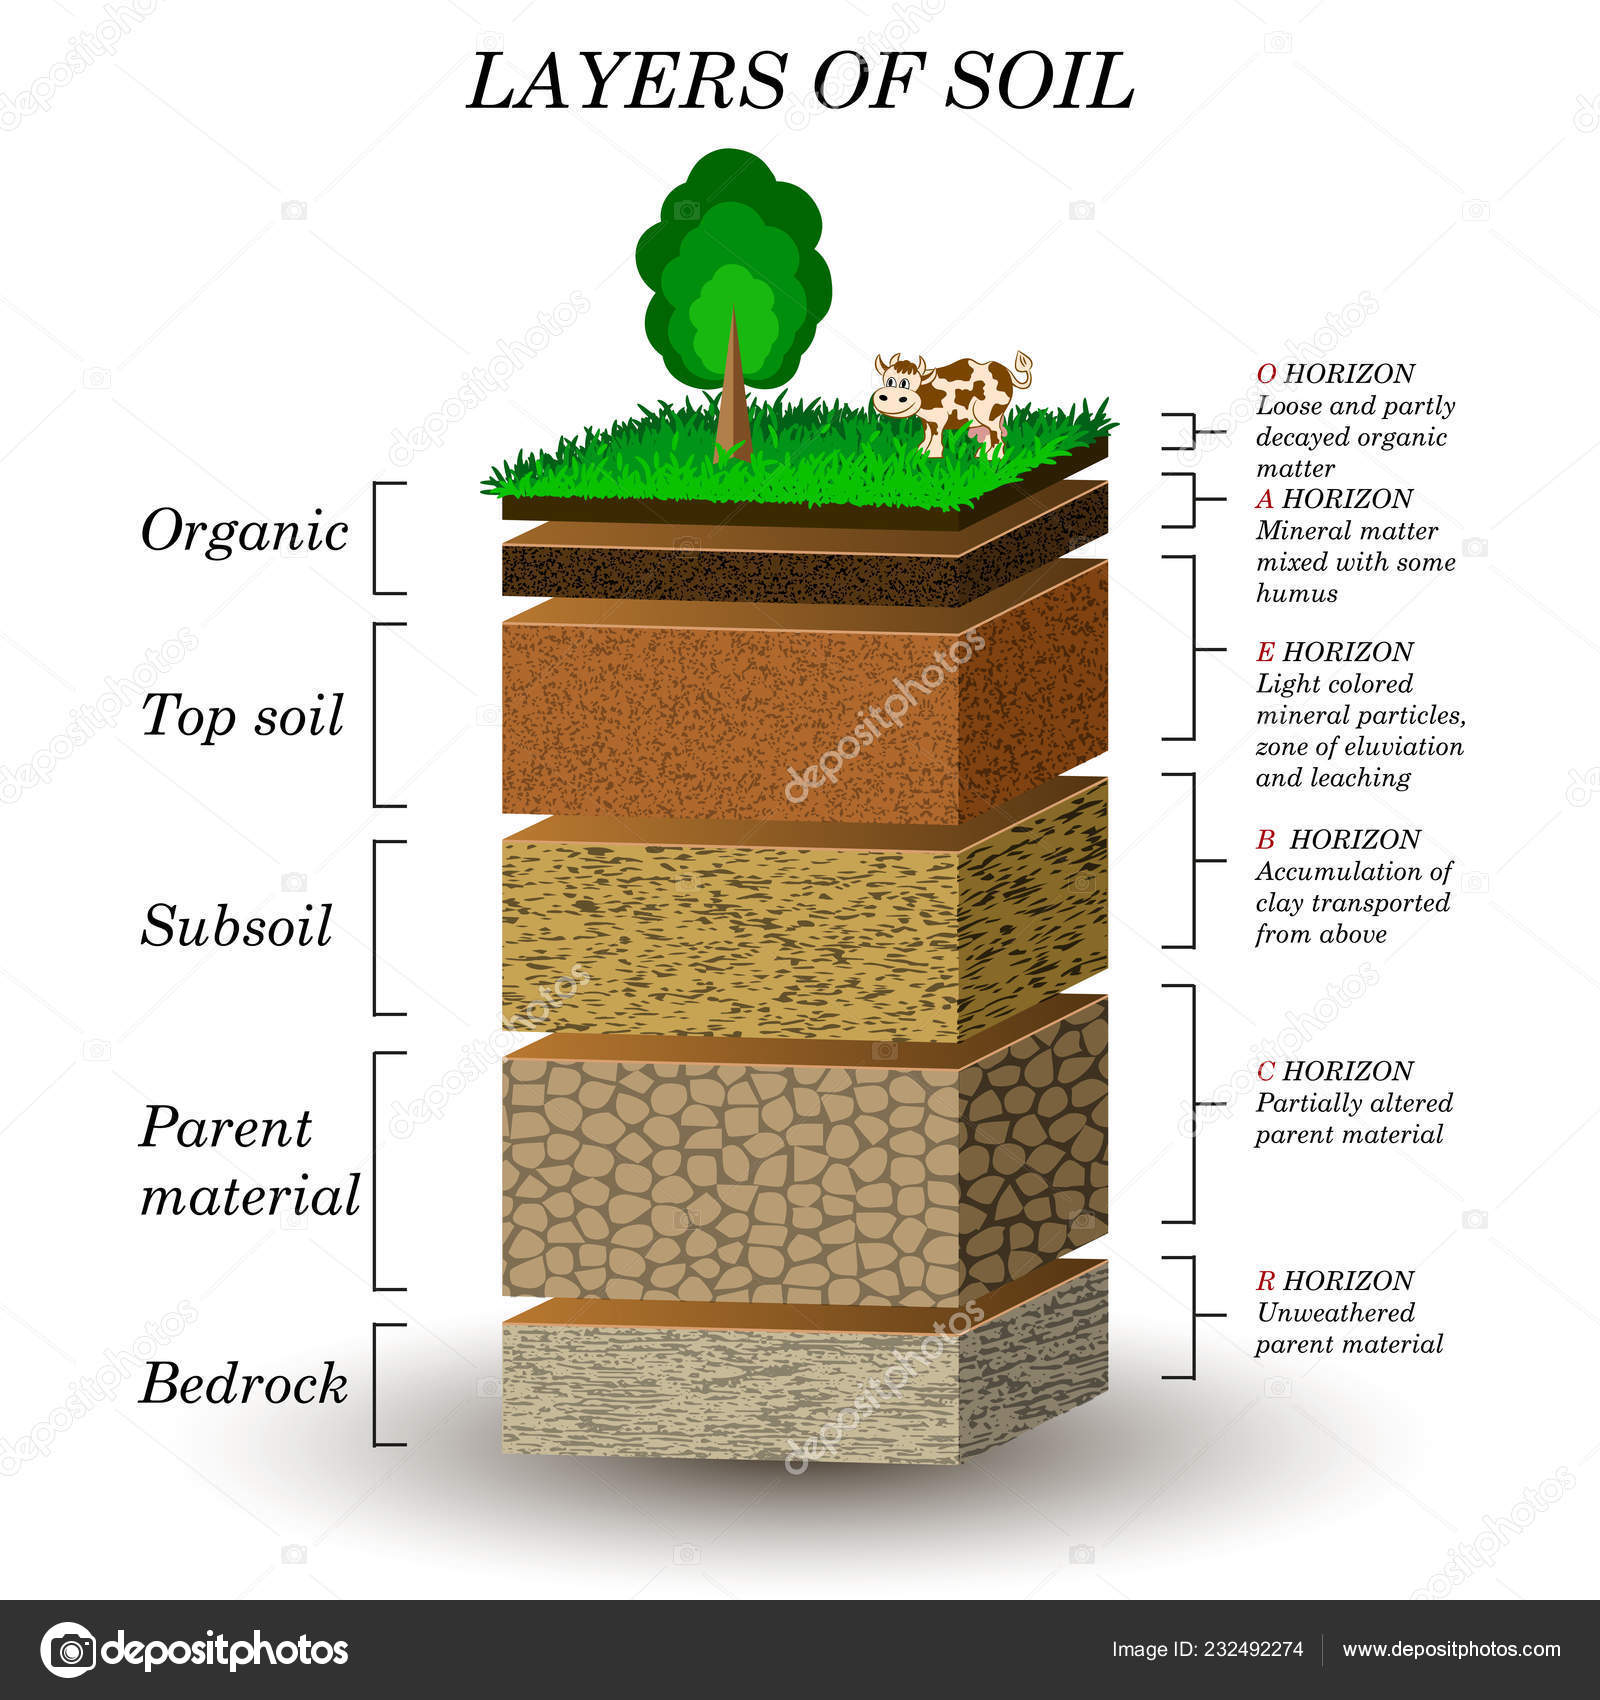 Layers Soil Education Diagram Mineral Particles Sand Humus